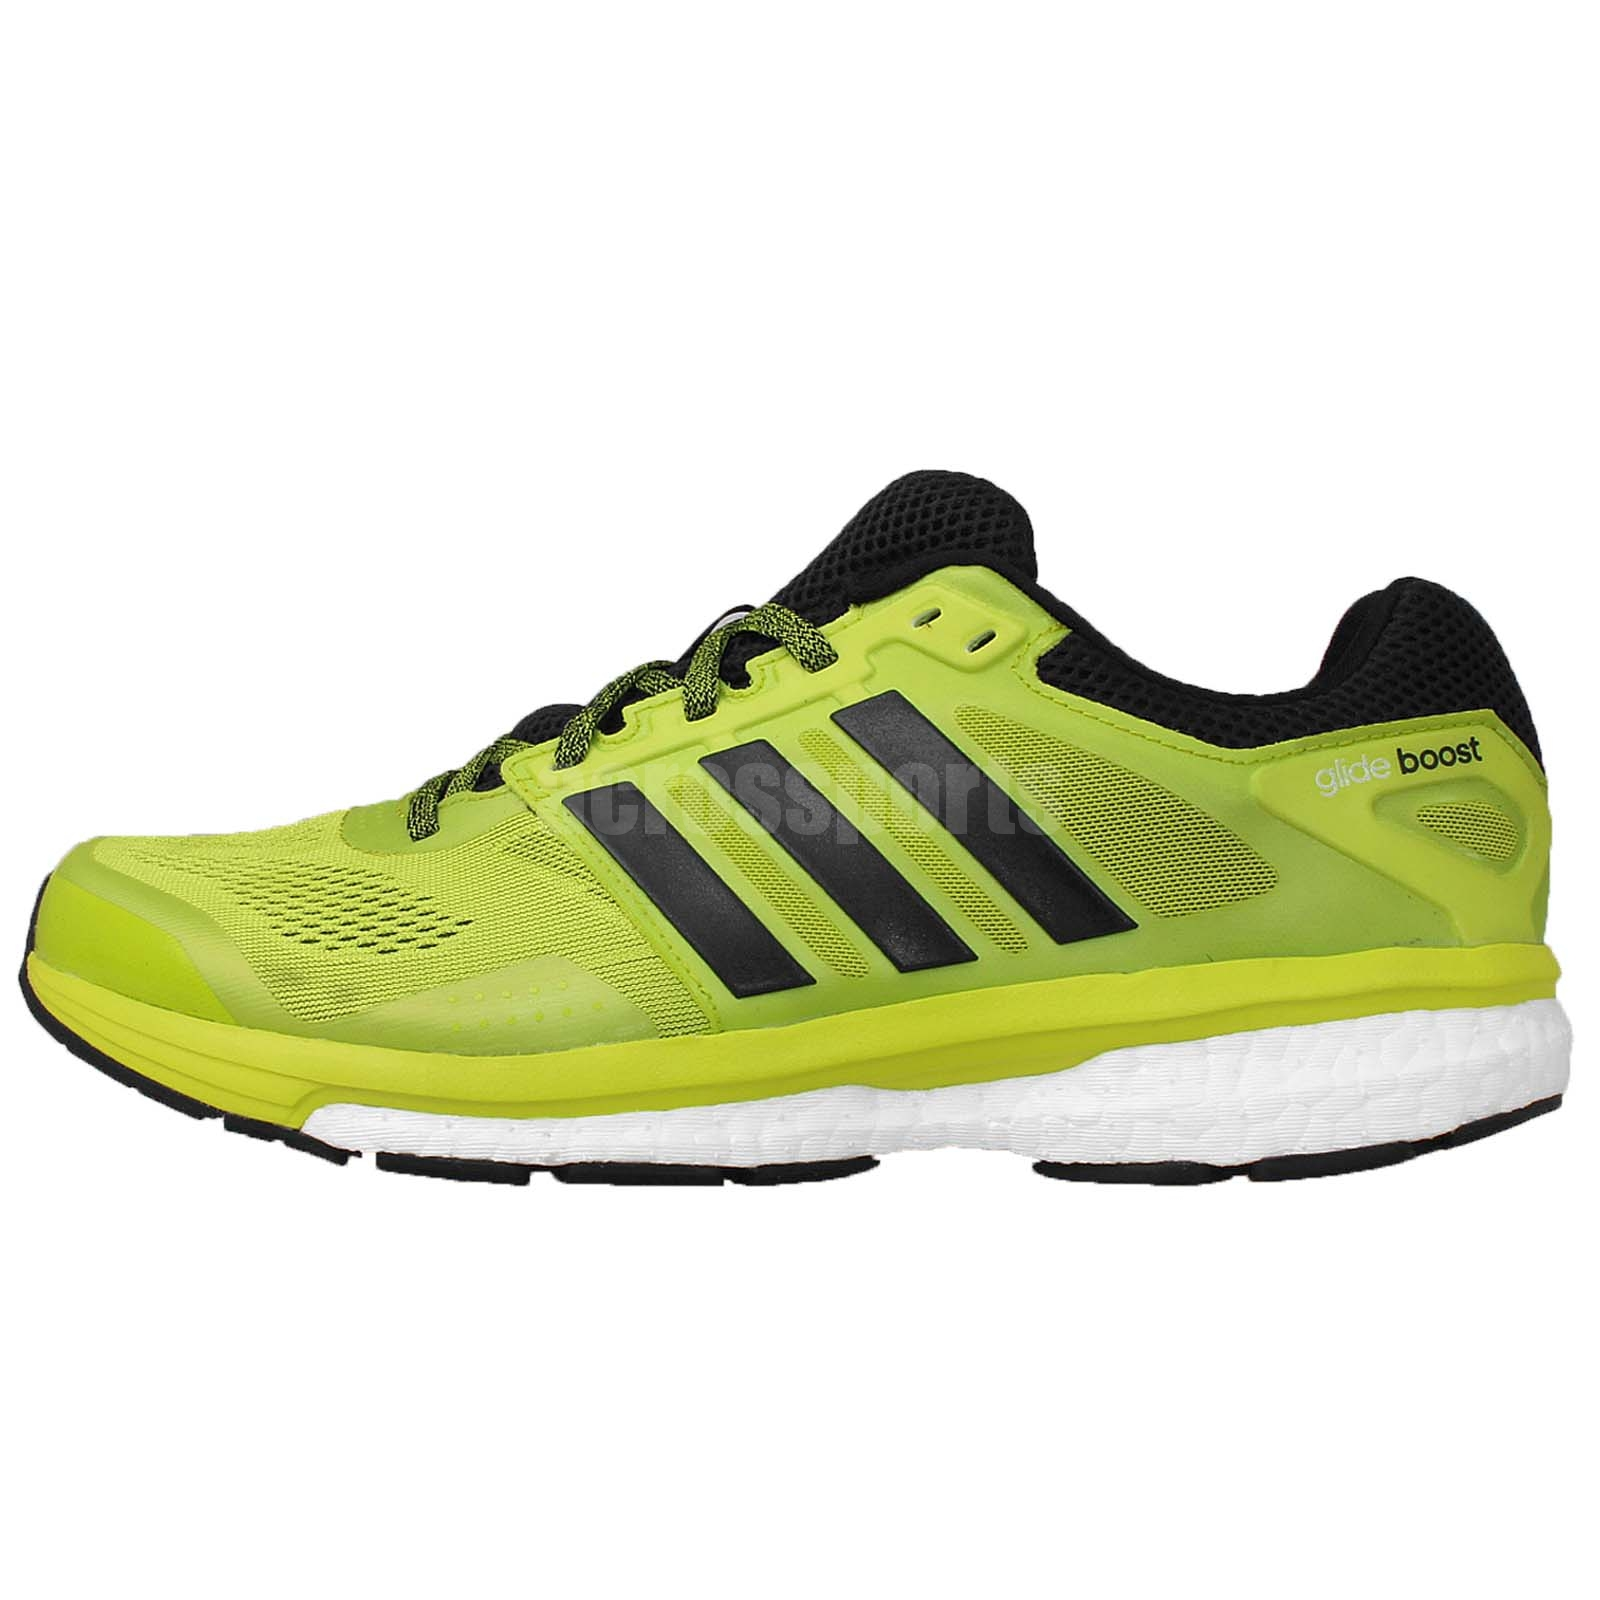 Luxury Adidas Running Shoes Men 2015  FOOTWEARPEDIA